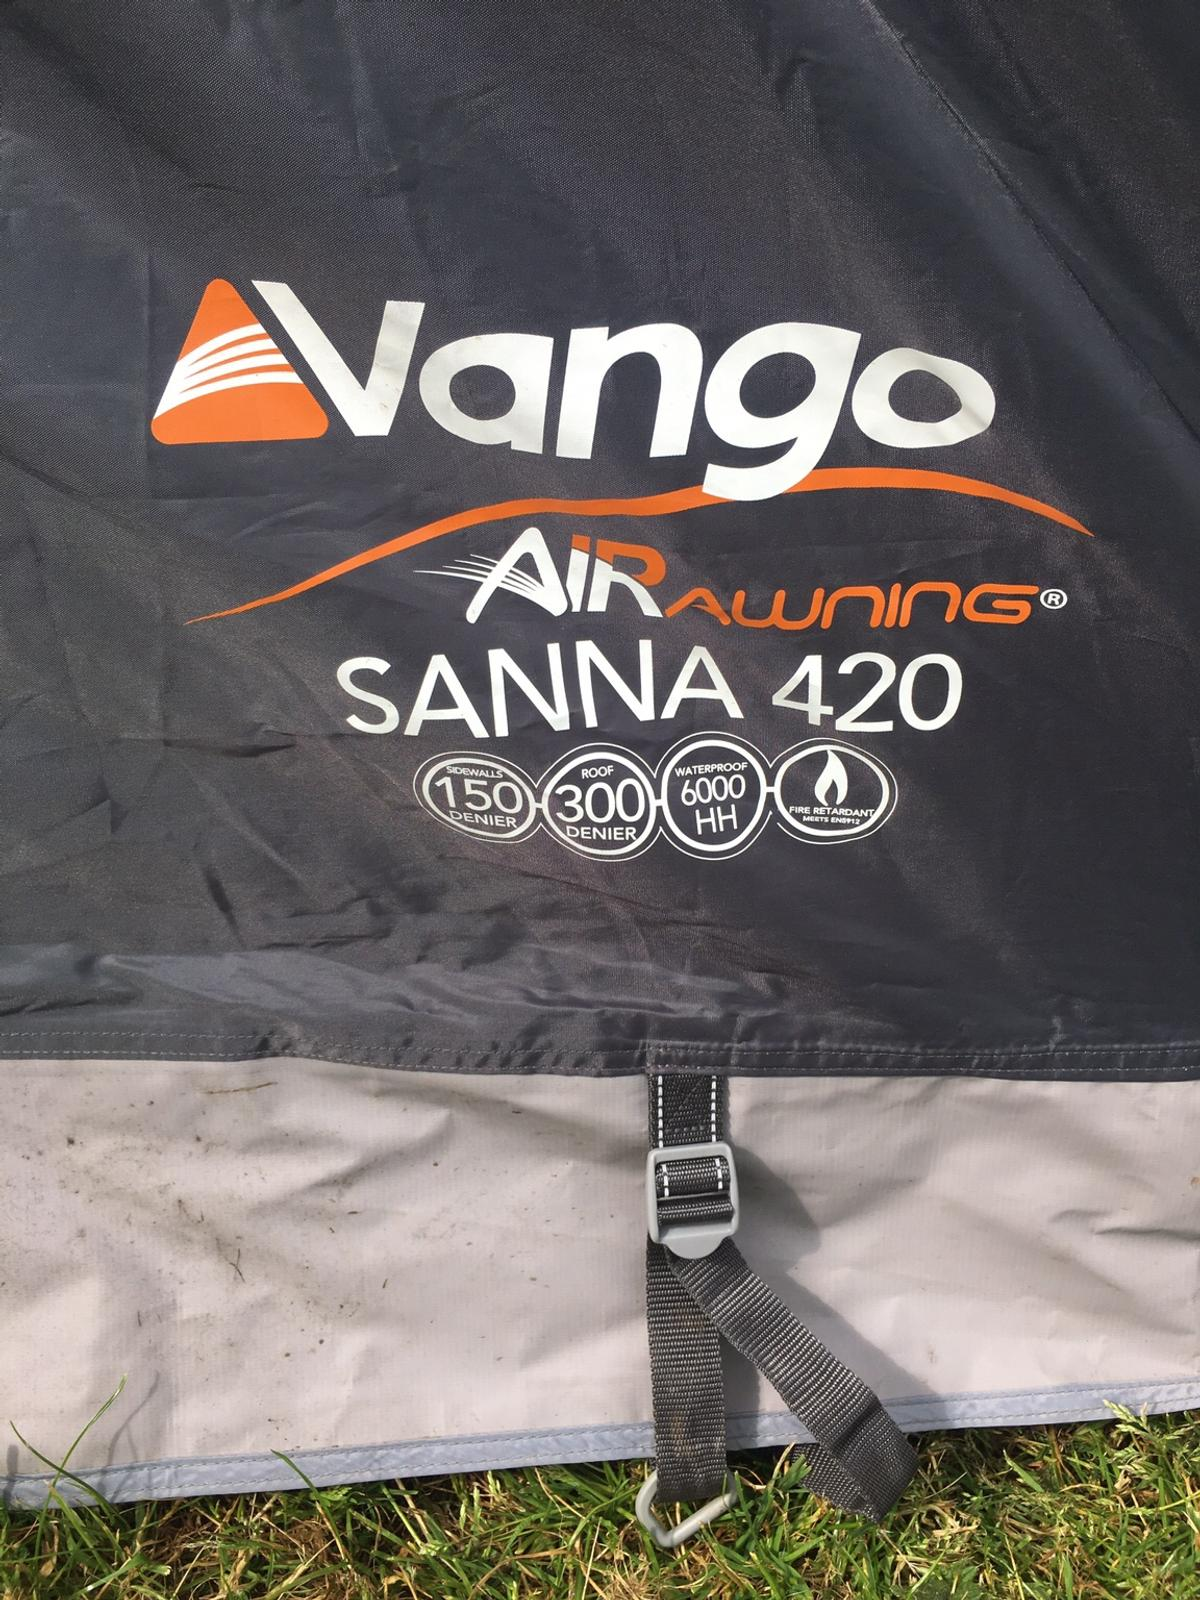 Vango Air Sanna 420 awning in B32 Birmingham for £300.00 ...